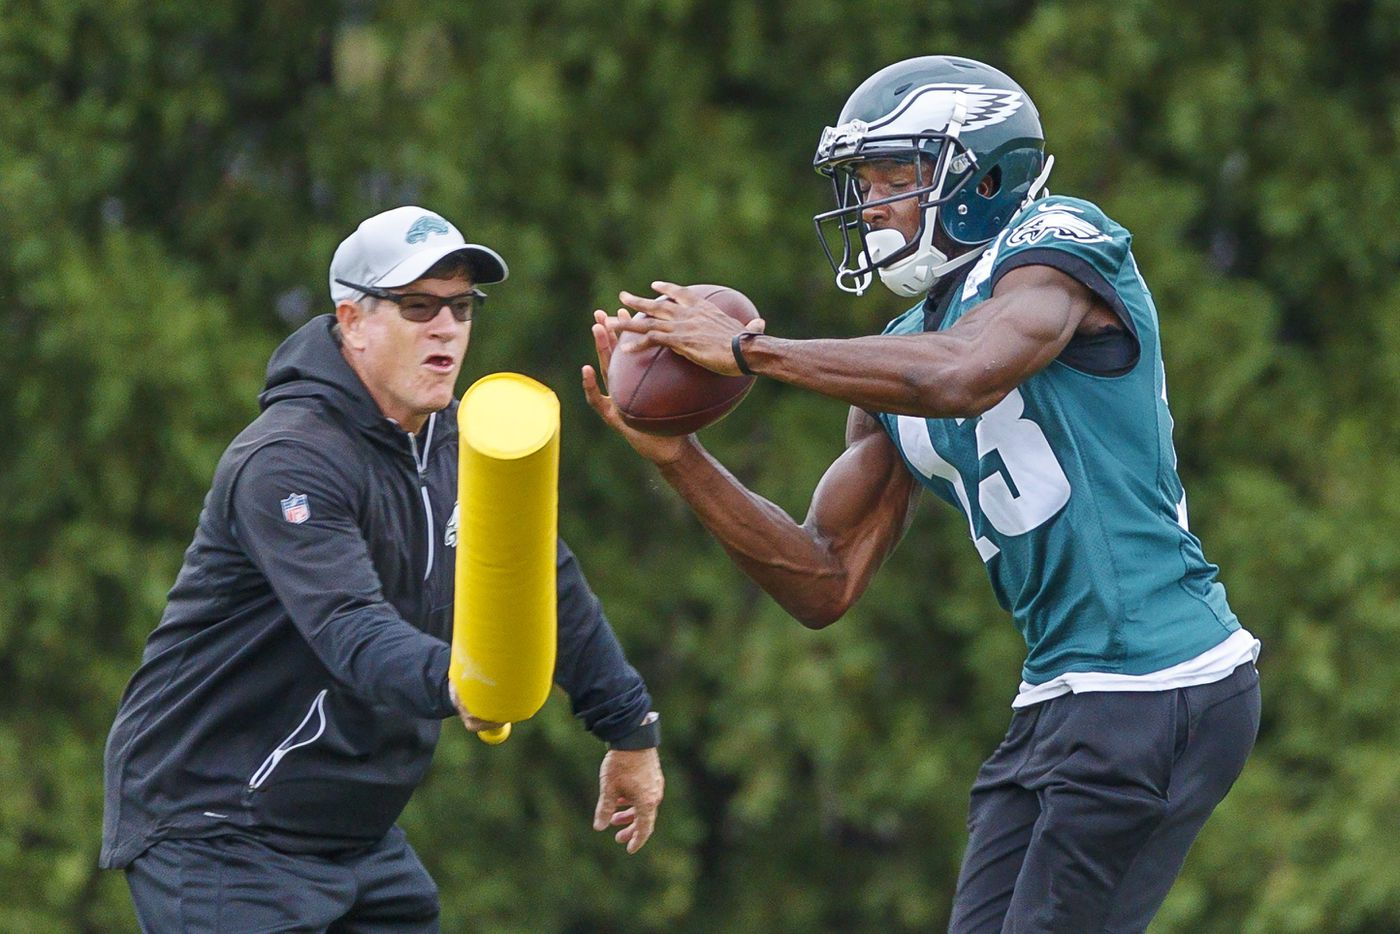 Eagles' Nelson Agholor to play in his hometown of Tampa for first time as a pro